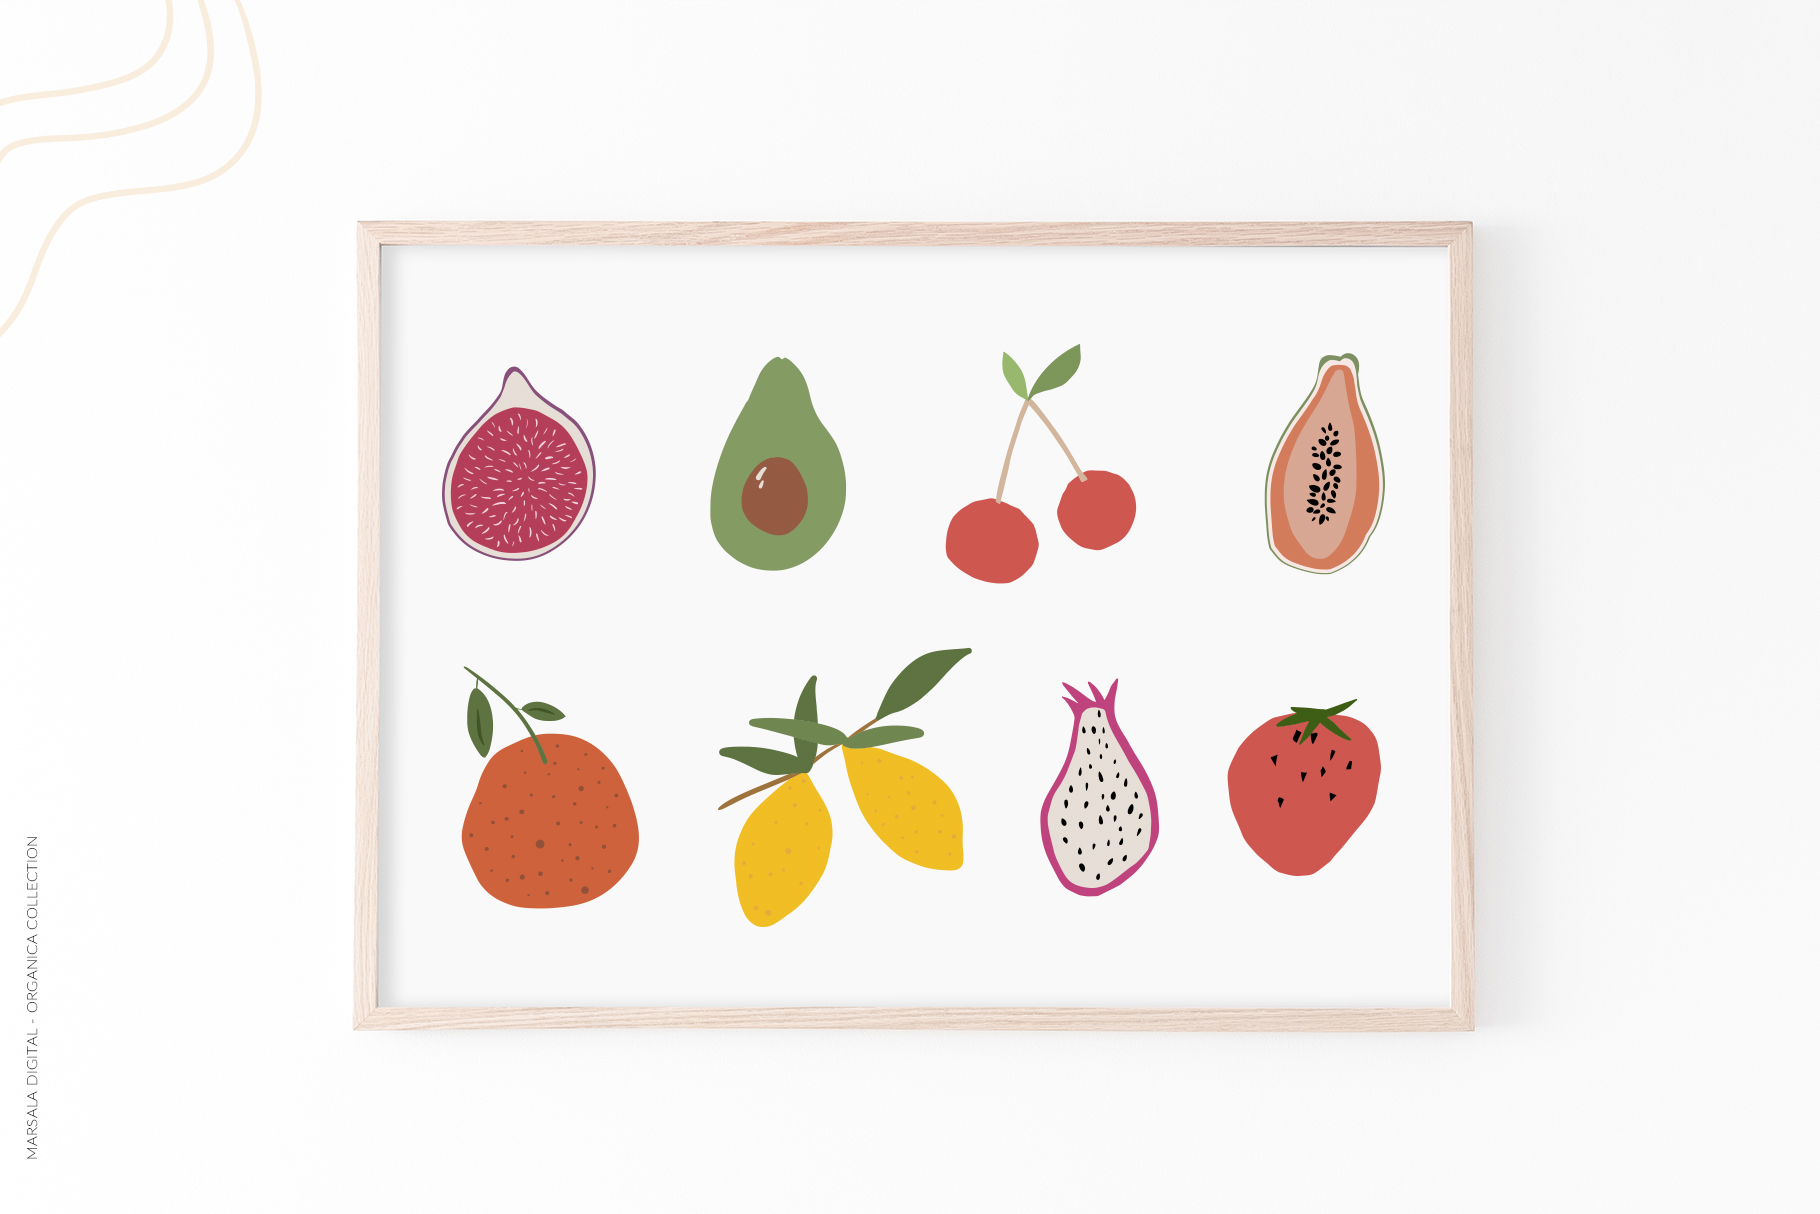 Abstract Shapes & Fun Fruits Patterns and Graphics example image 5